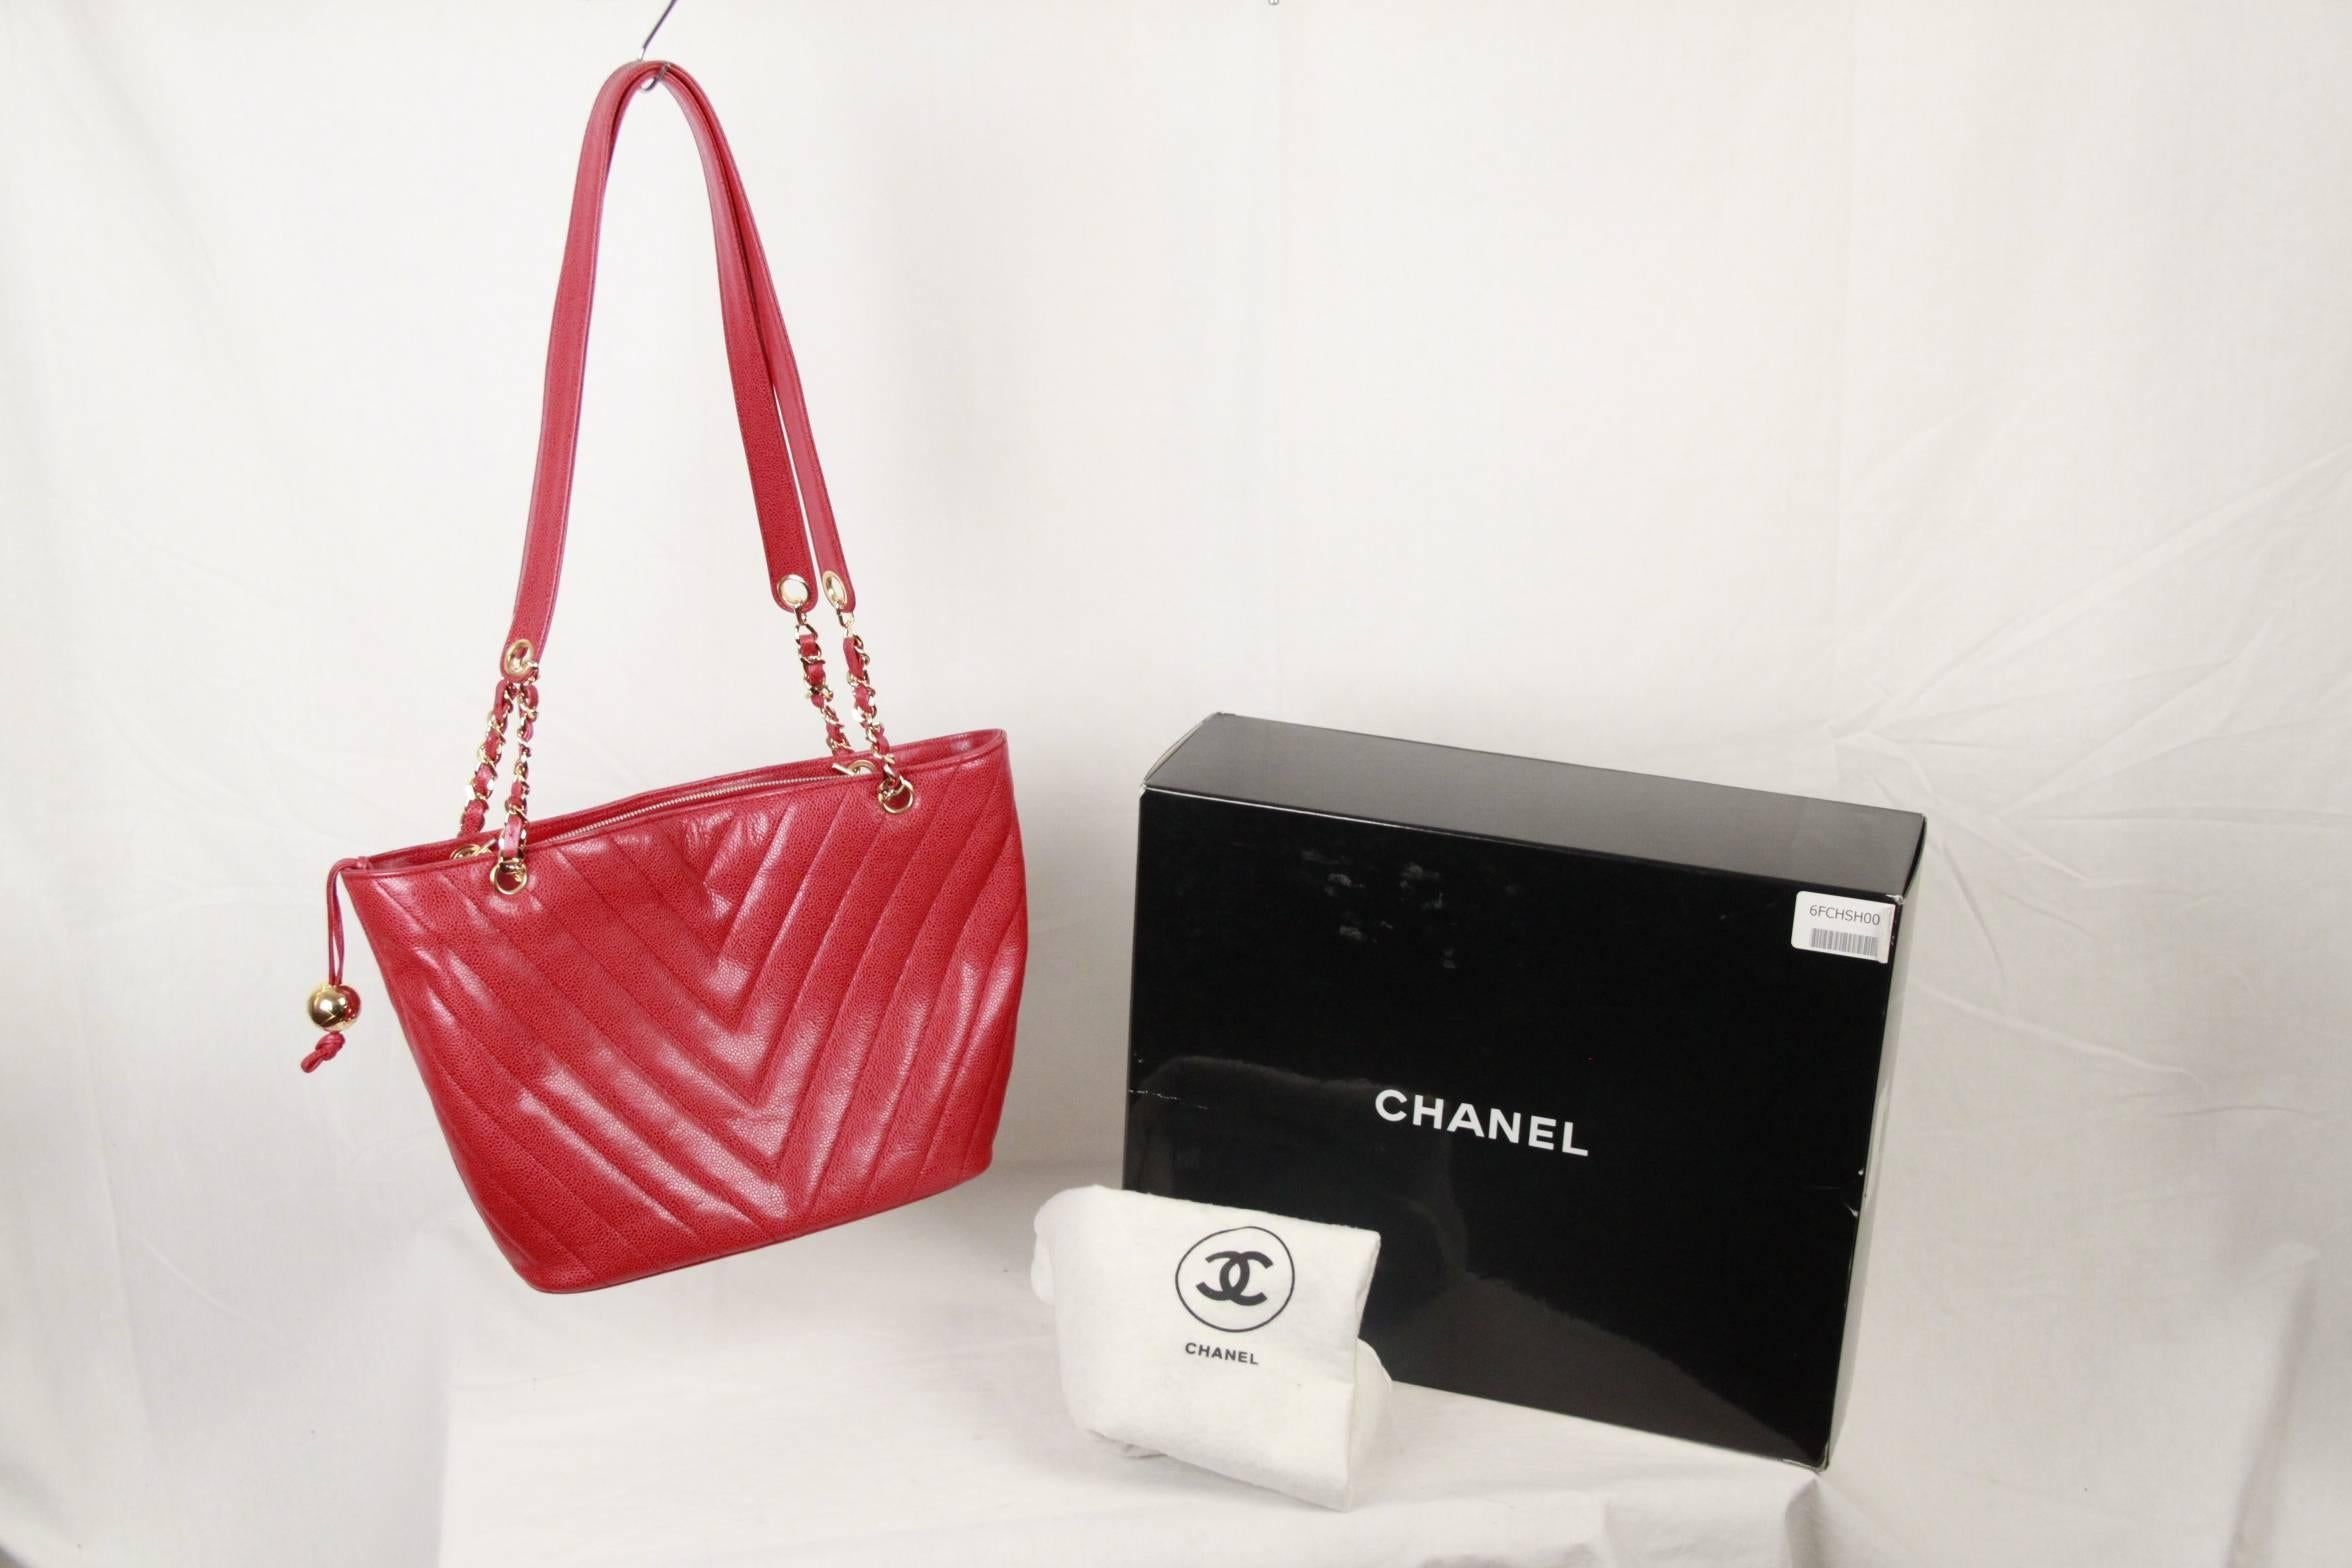 58c093216a6d4d CHANEL Vintage Red CHEVRON Caviar Leather TOTE For Sale at 1stdibs